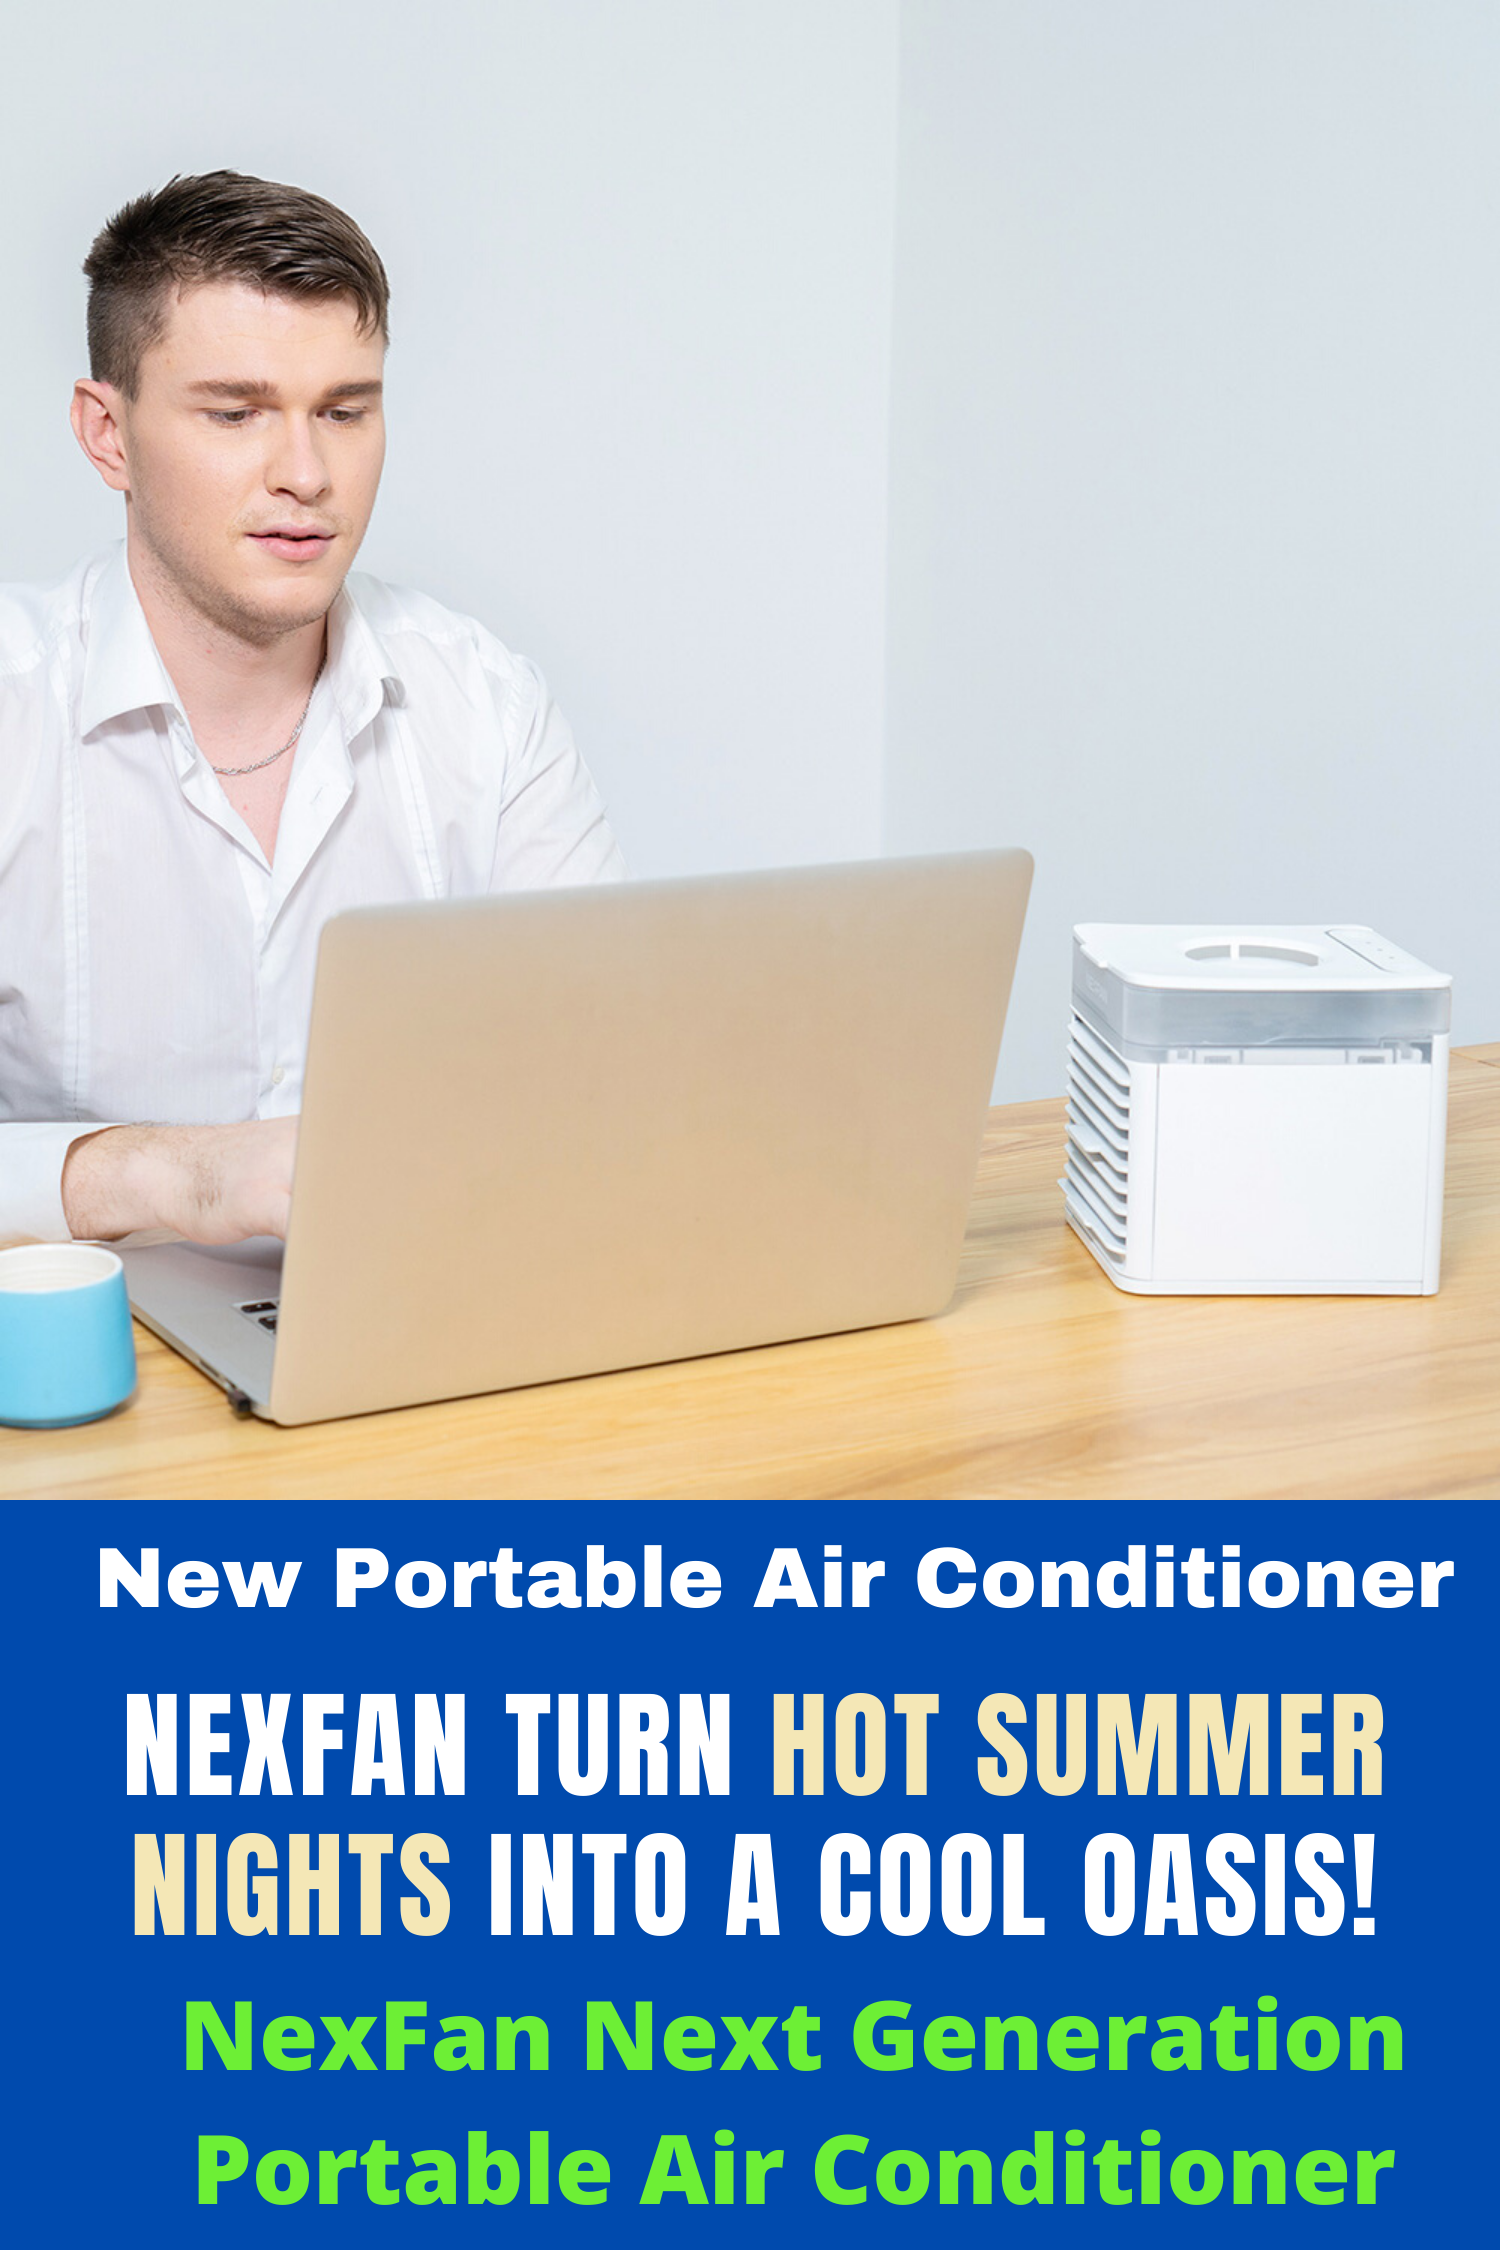 NexFan The Next Generation Portable Air Conditioner in